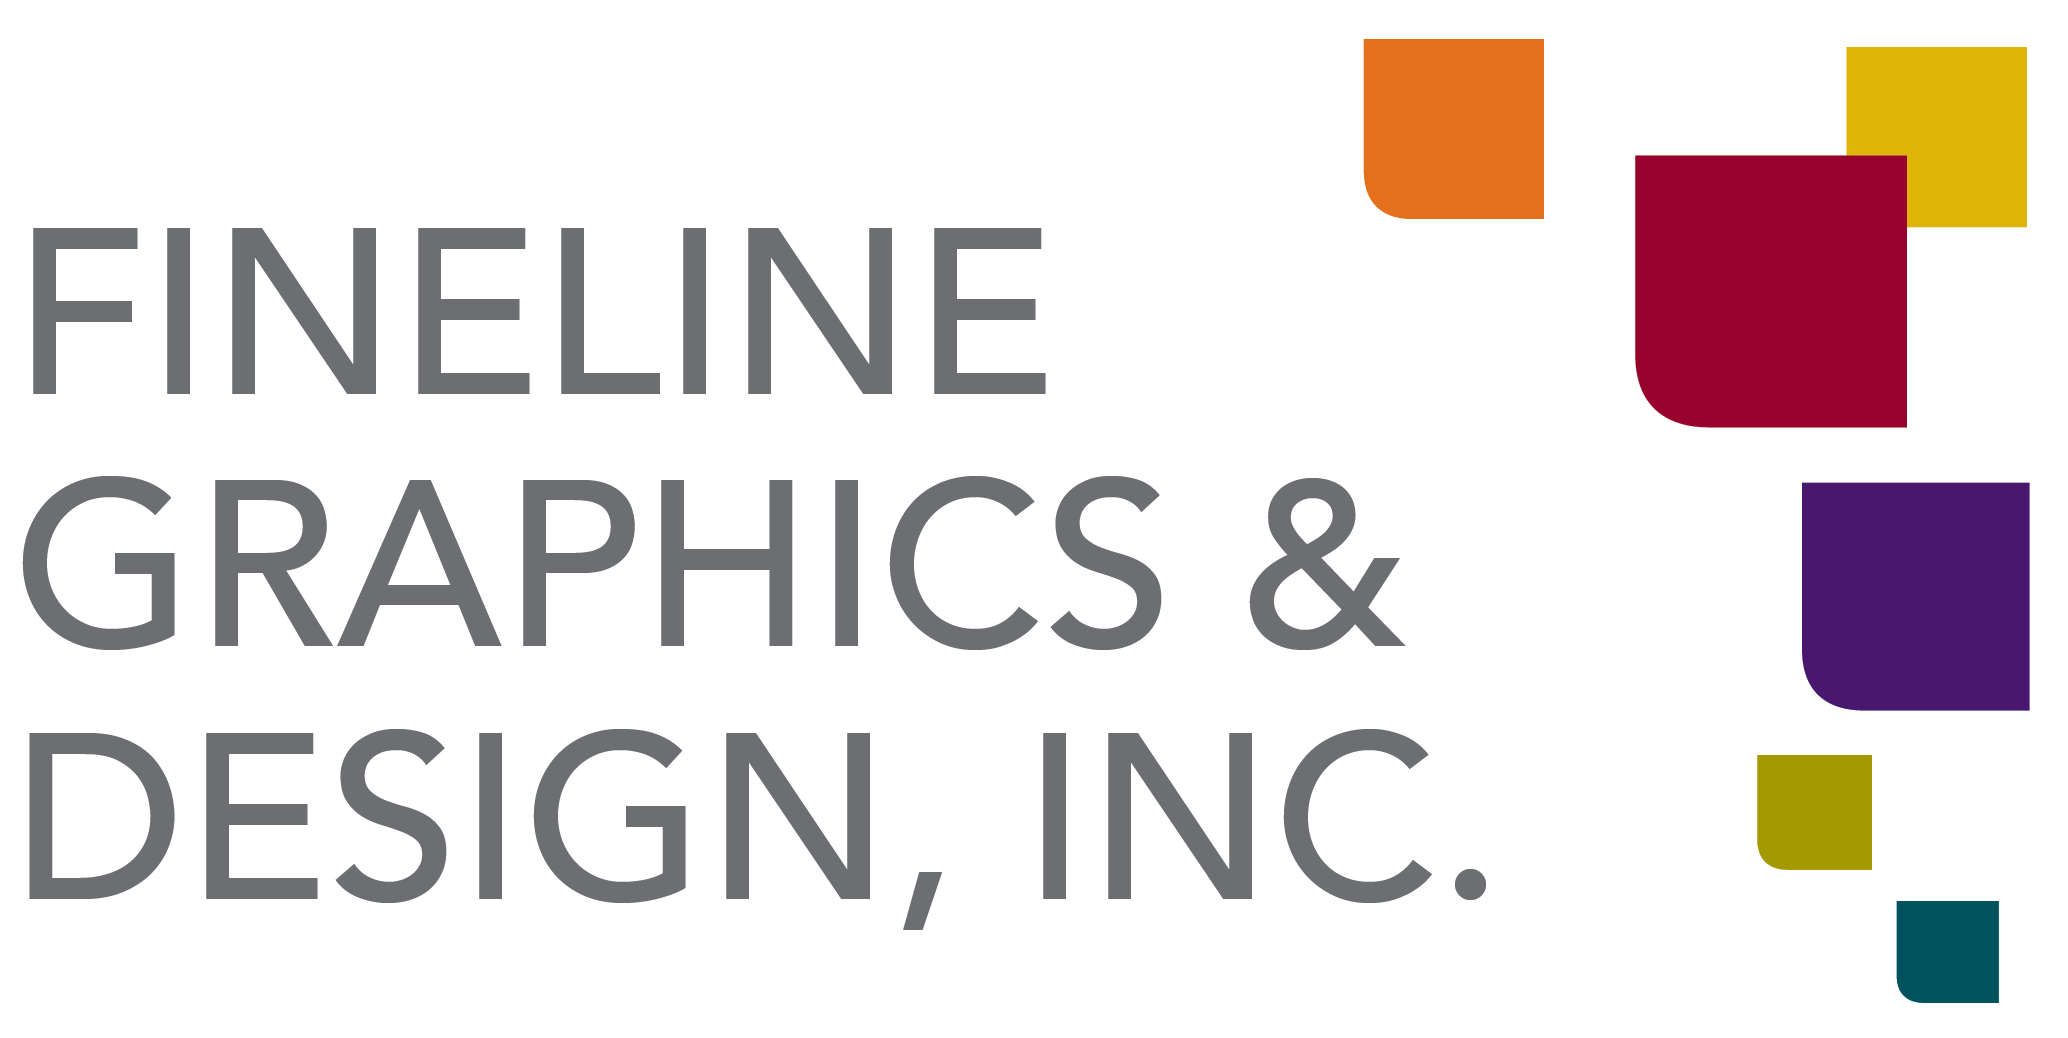 FineLine Graphics & Design, Inc.